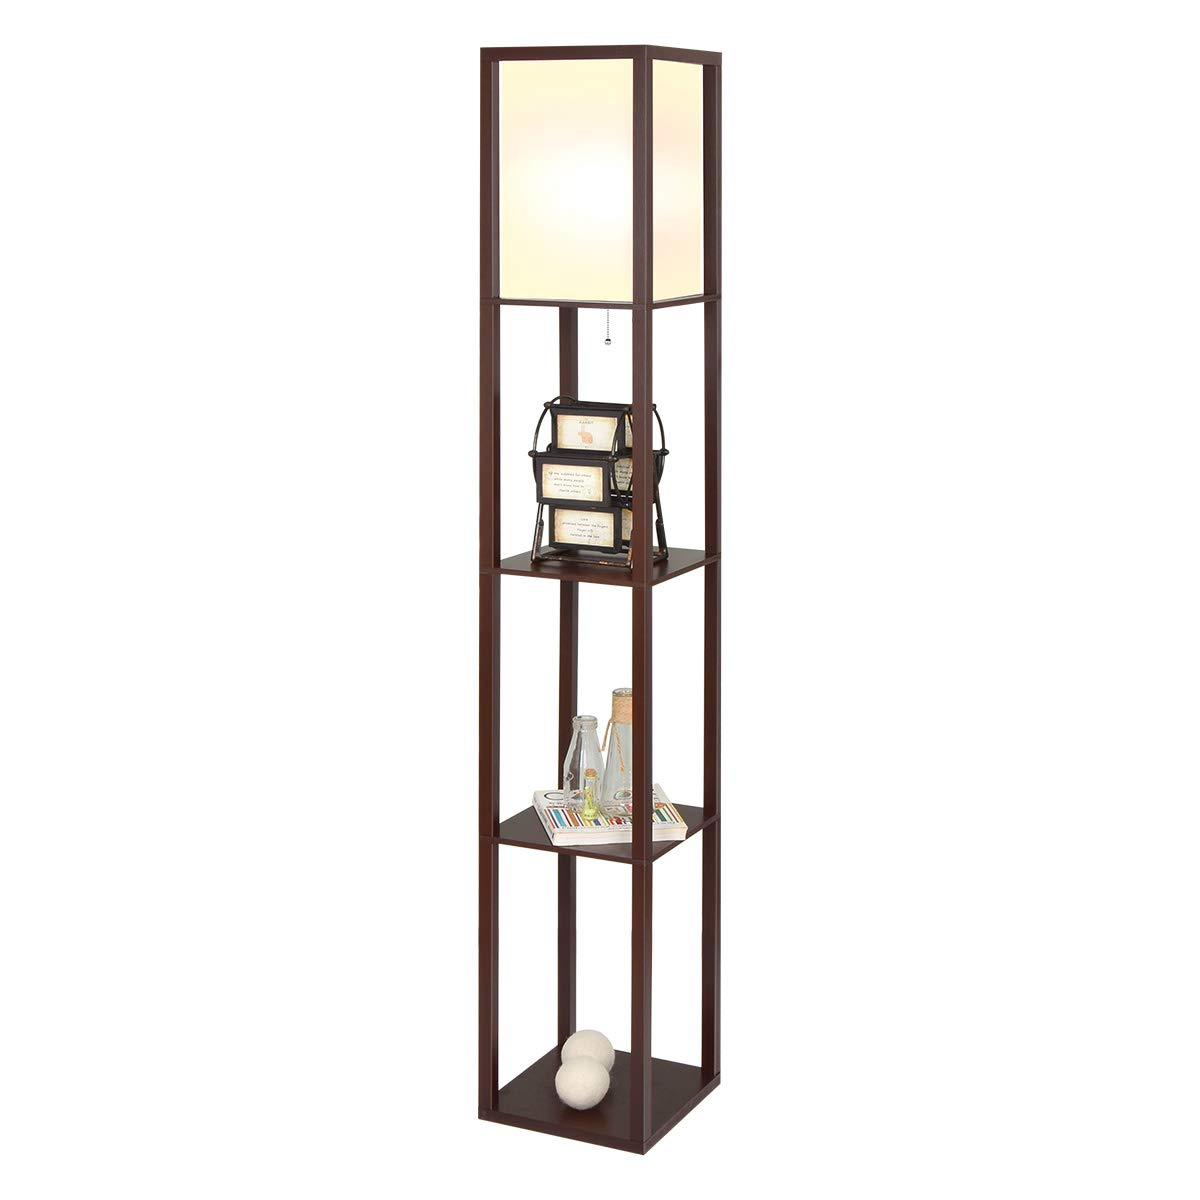 Home-Man LED Floor Lamp - Etagere Style Modern Standing Light for Living Rooms & Bedrooms with LED Light Bulb Included - 3 Tiers Storage Shelving for Accent Decor Organization